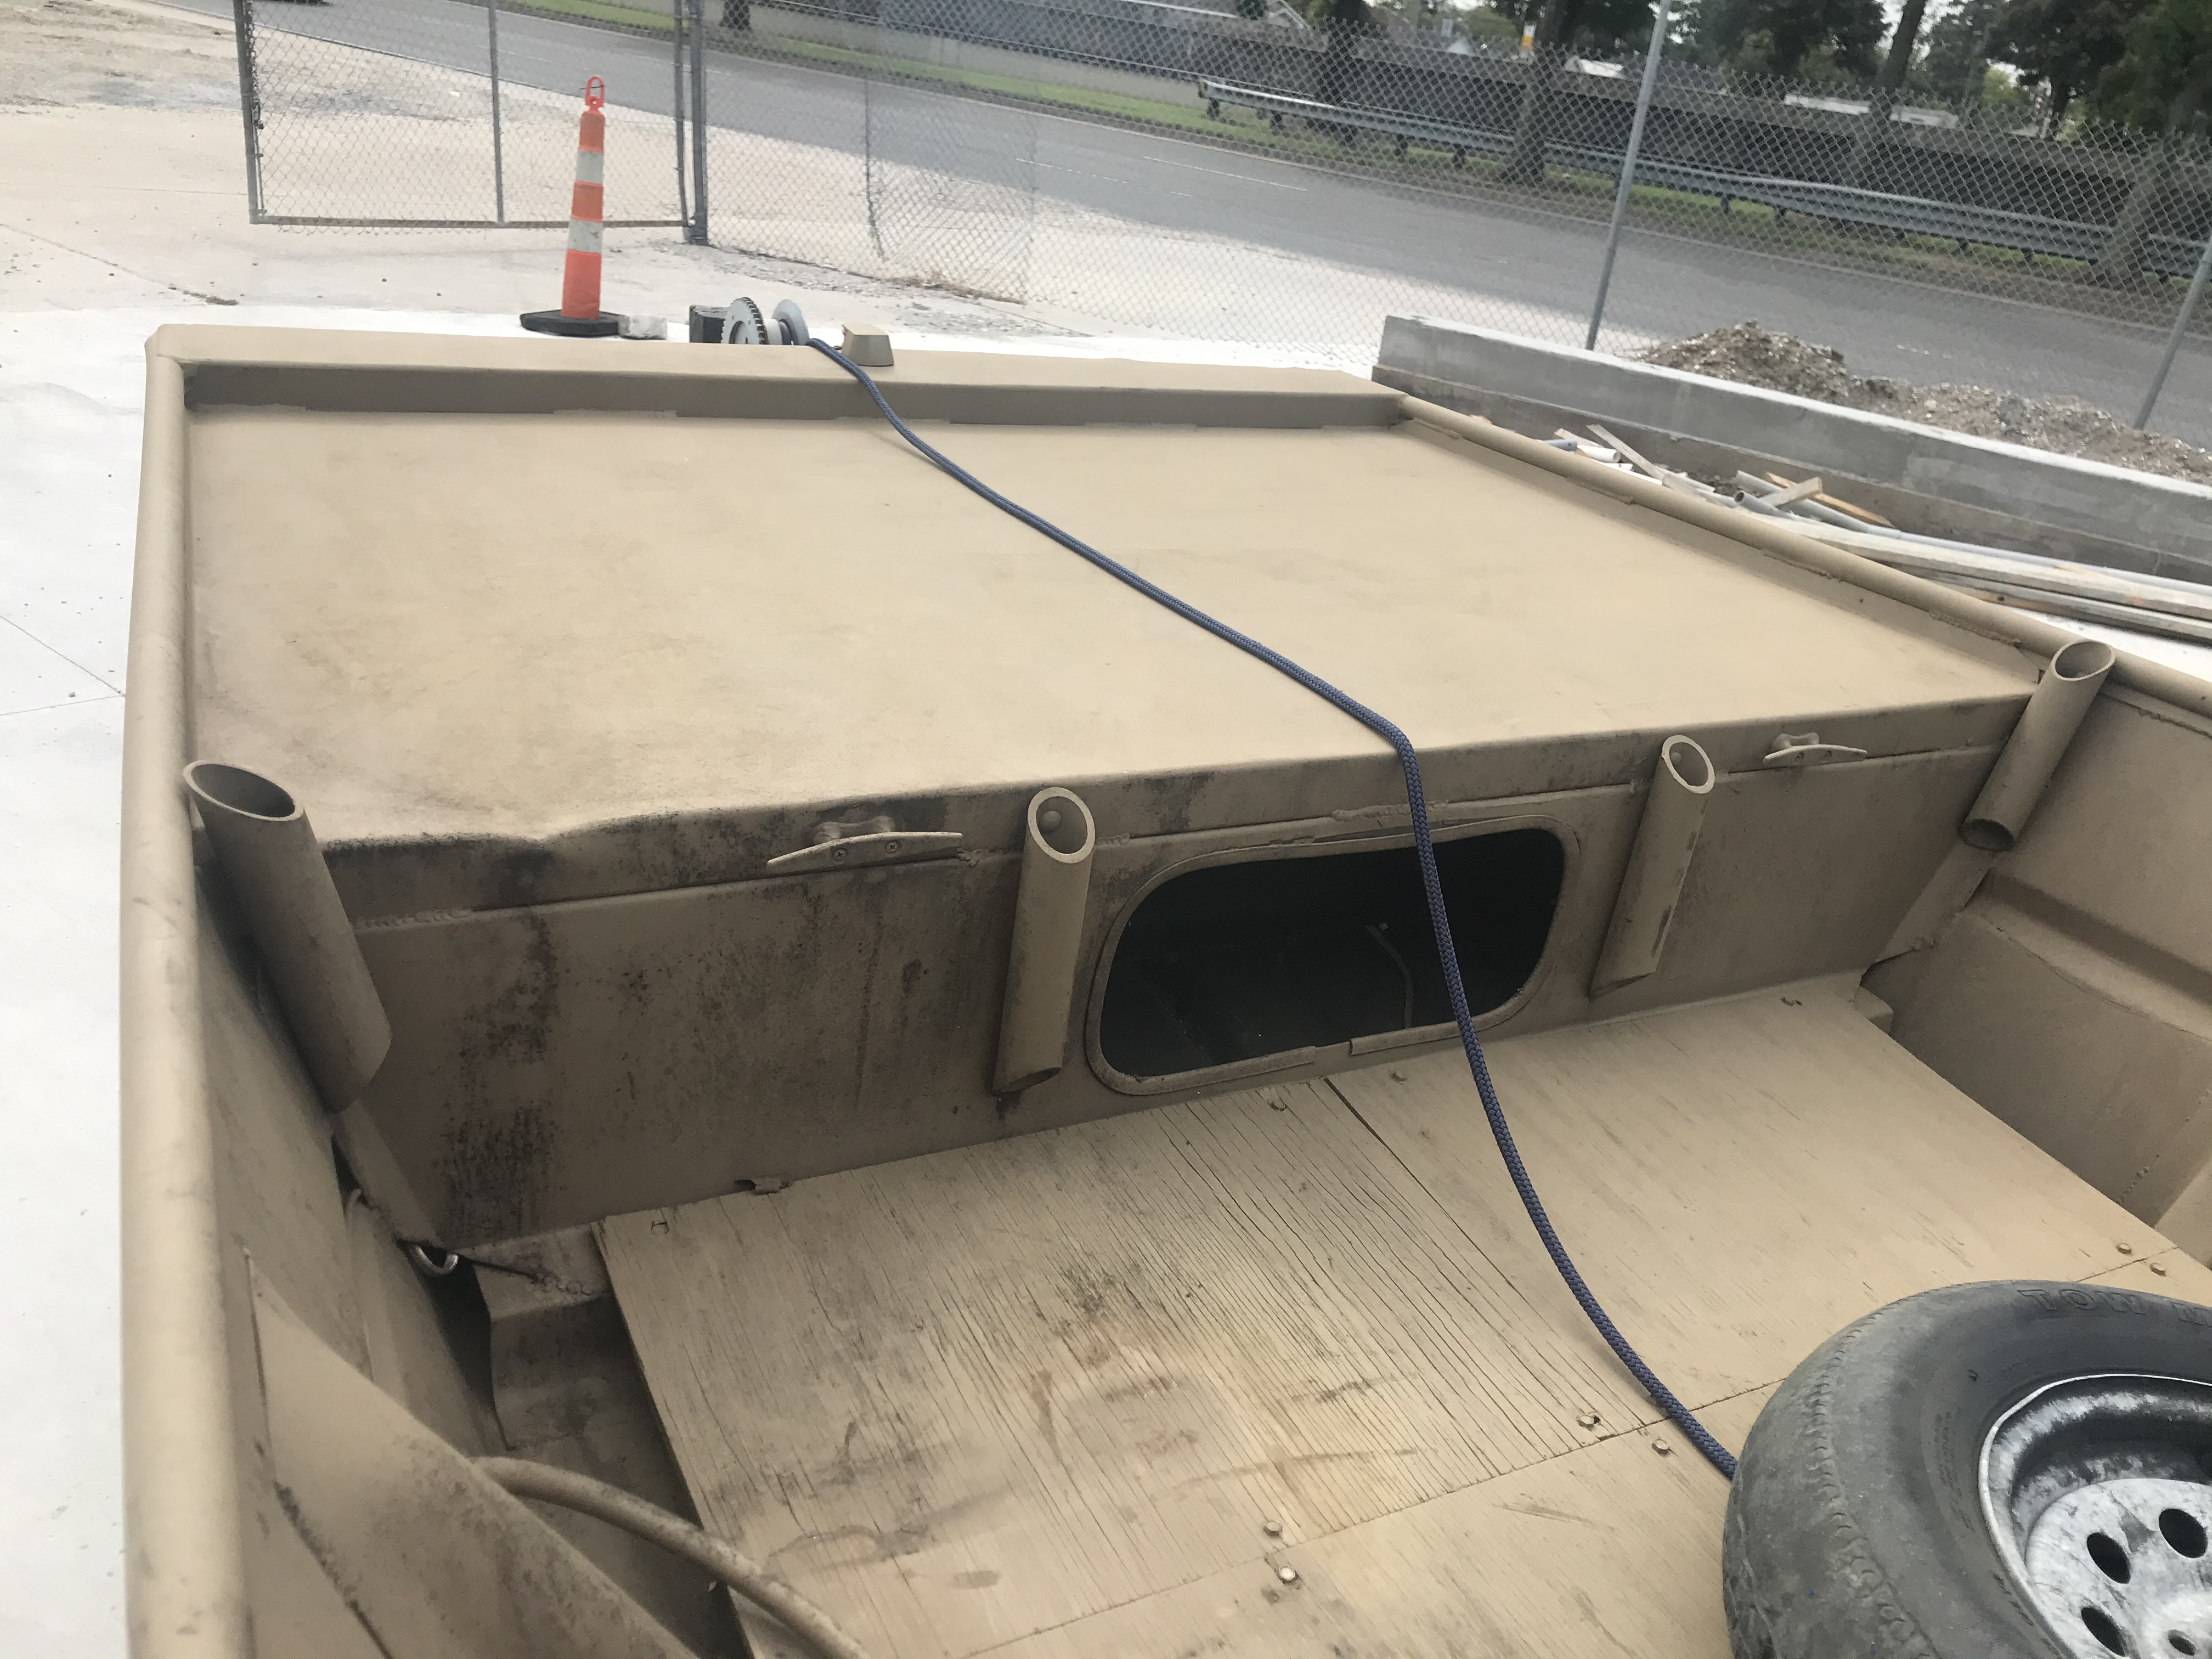 2009 Weldbuilt boat for sale, model of the boat is 17 & Image # 3 of 6